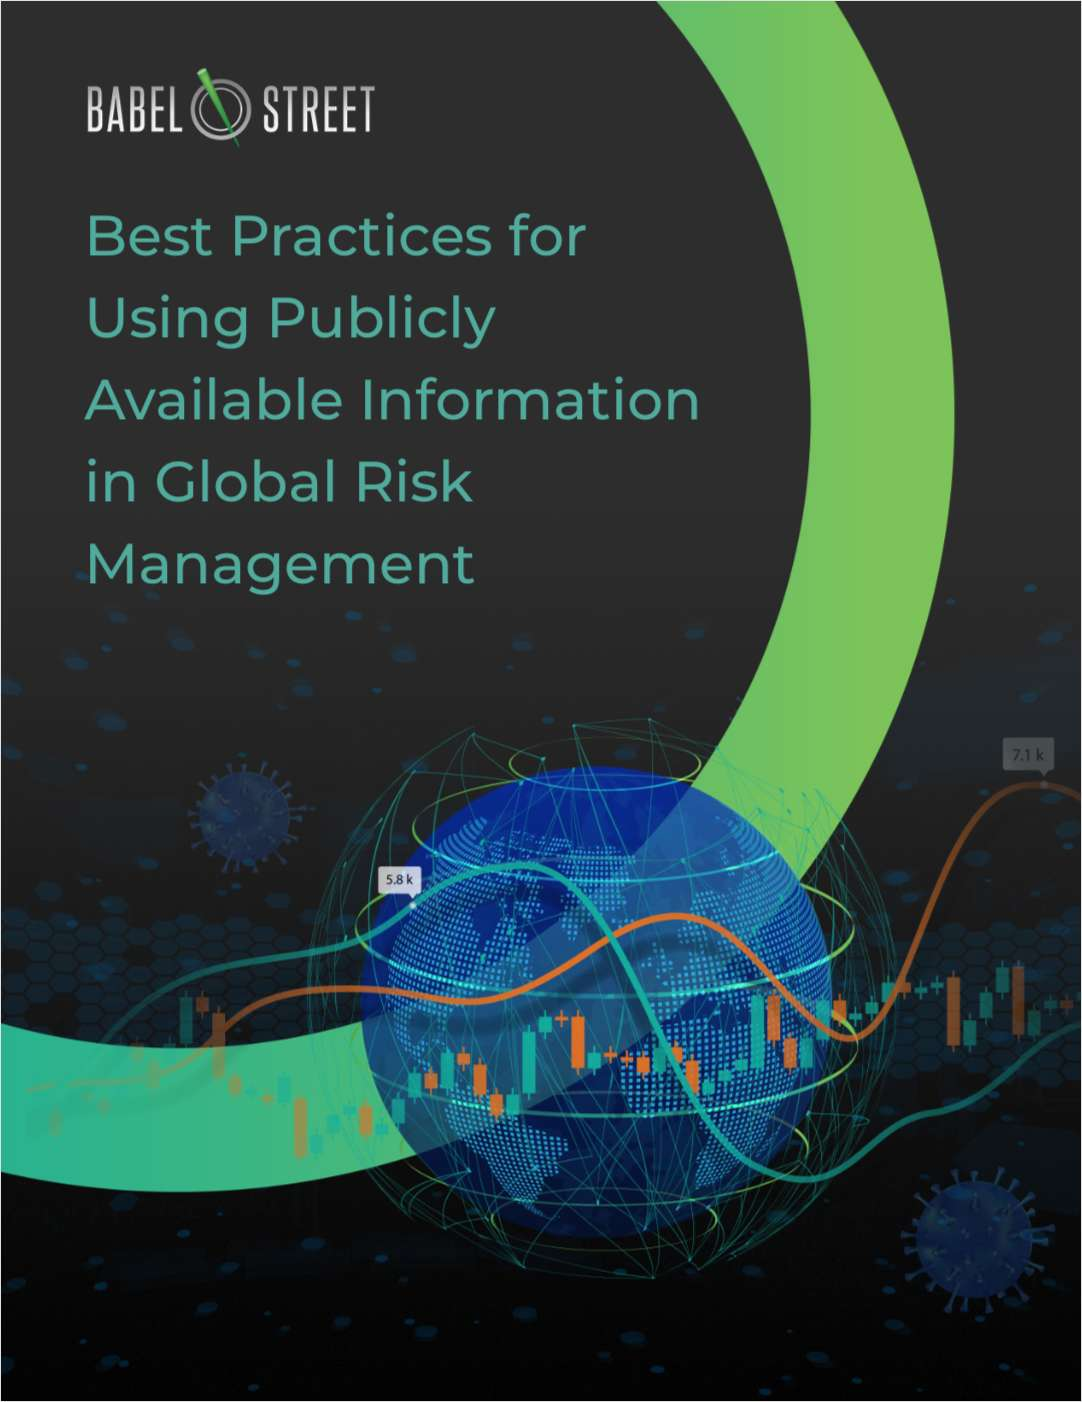 Best Practices for Using Publicly Available Information in Global Risk Management